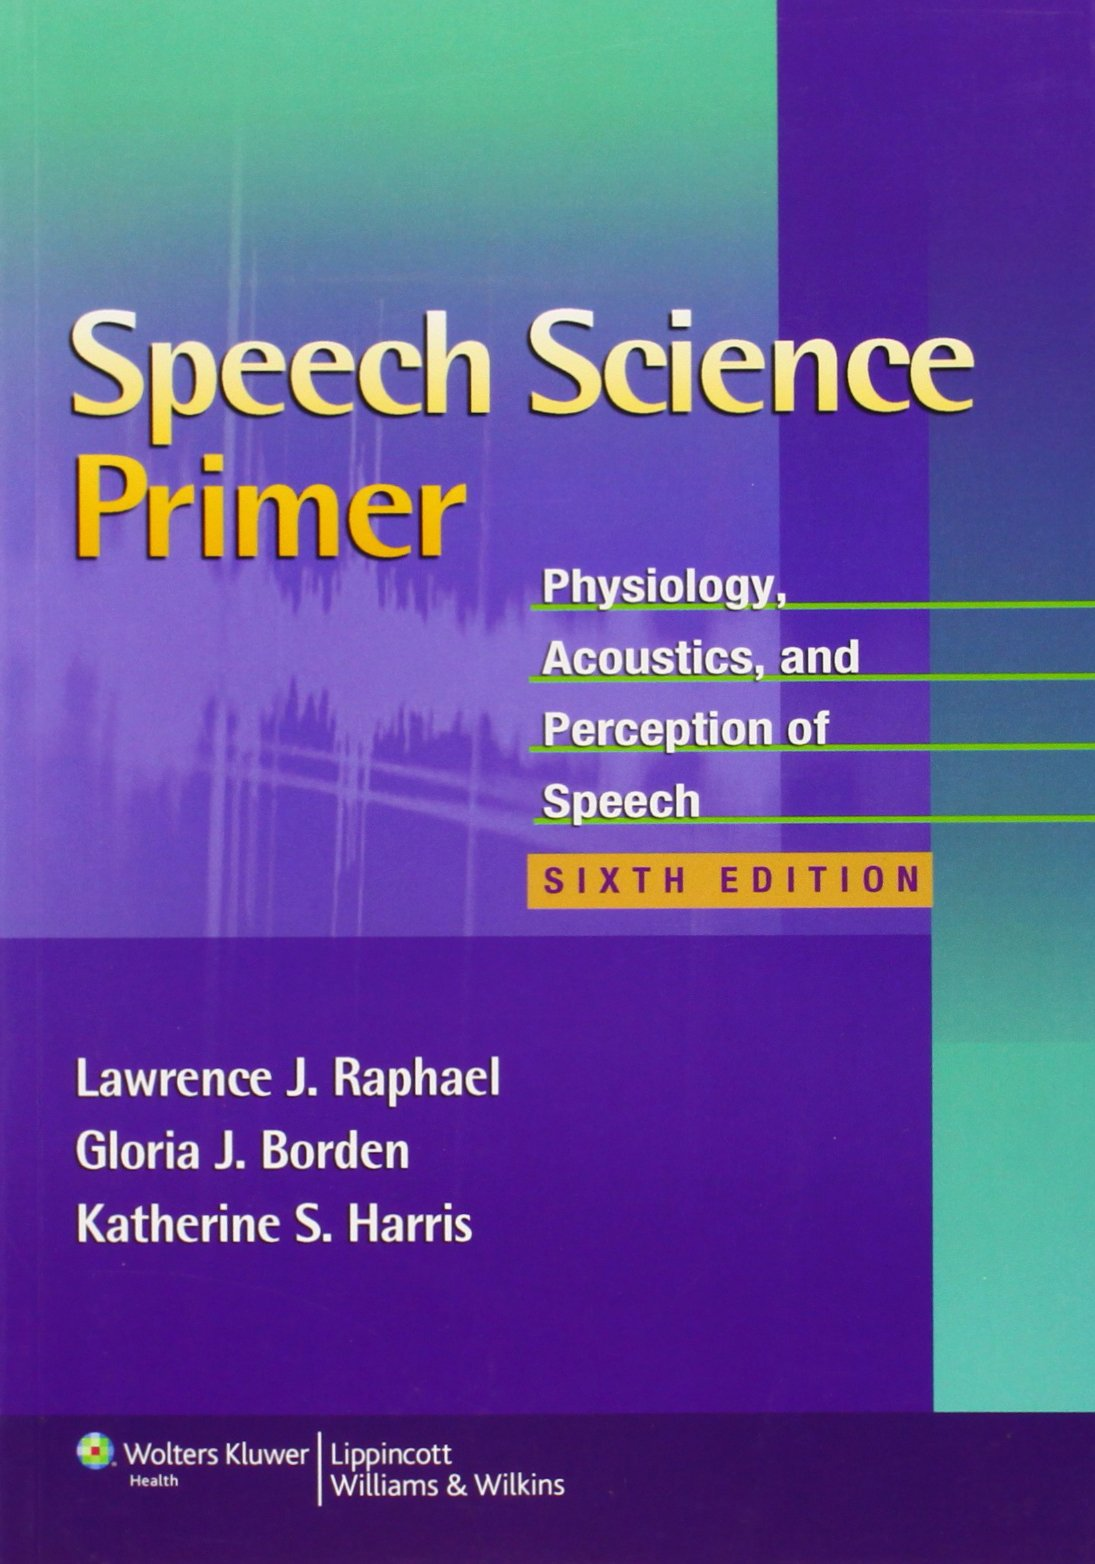 Speech Science Primer: Physiology, Acoustics, and Perception of Speech by Brand: Lippincott Williams Wilkins